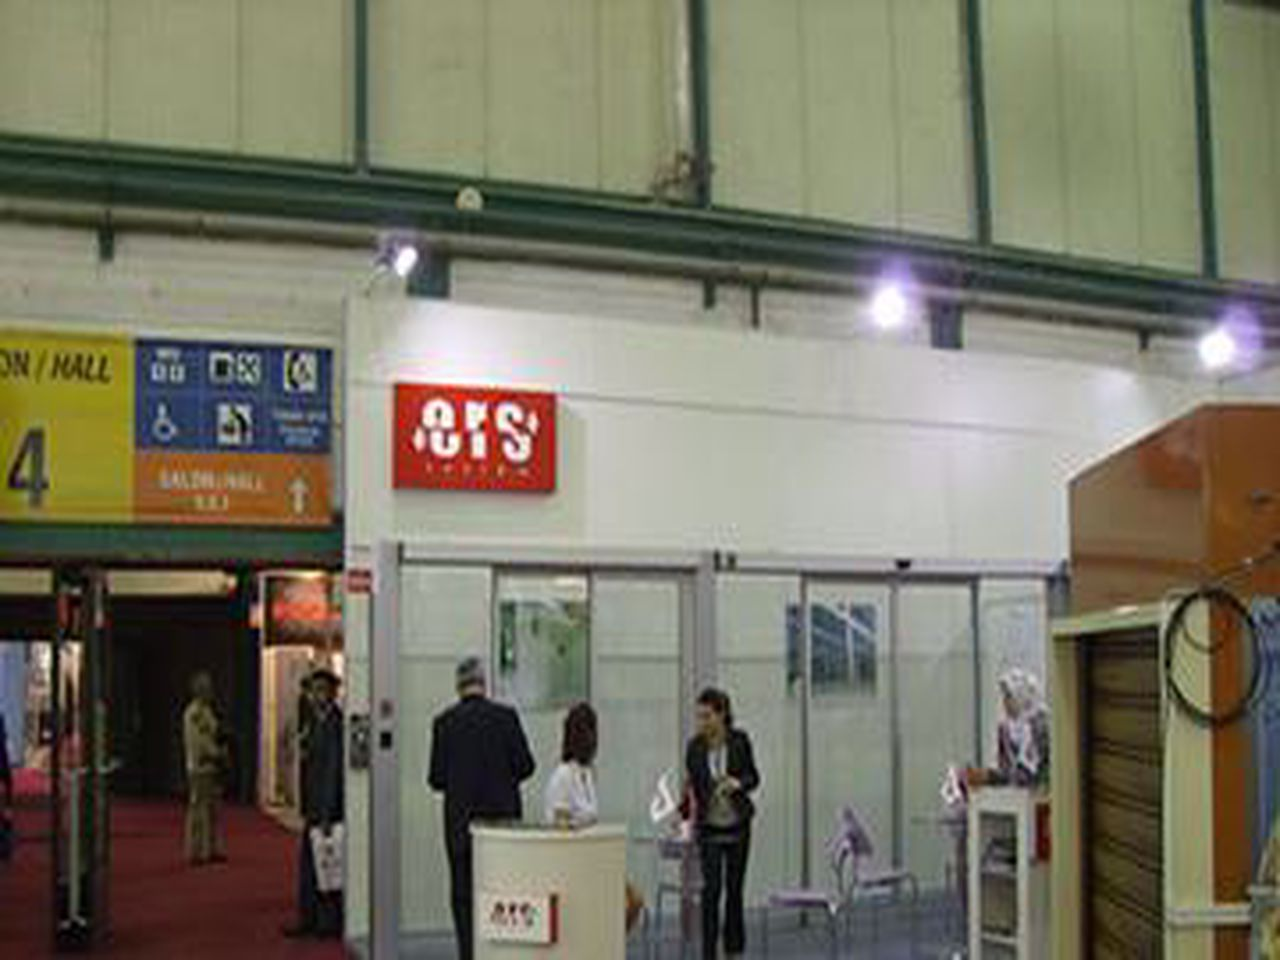 We were at the 2011 Istanbul TUYAP Door Fair.